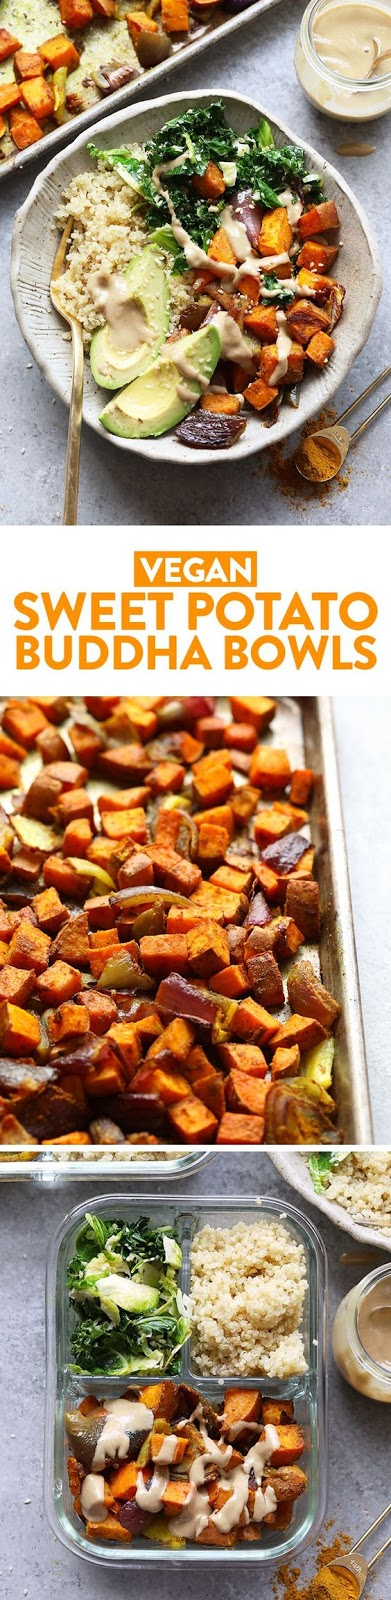 Sweet Potato Buddha Bowls